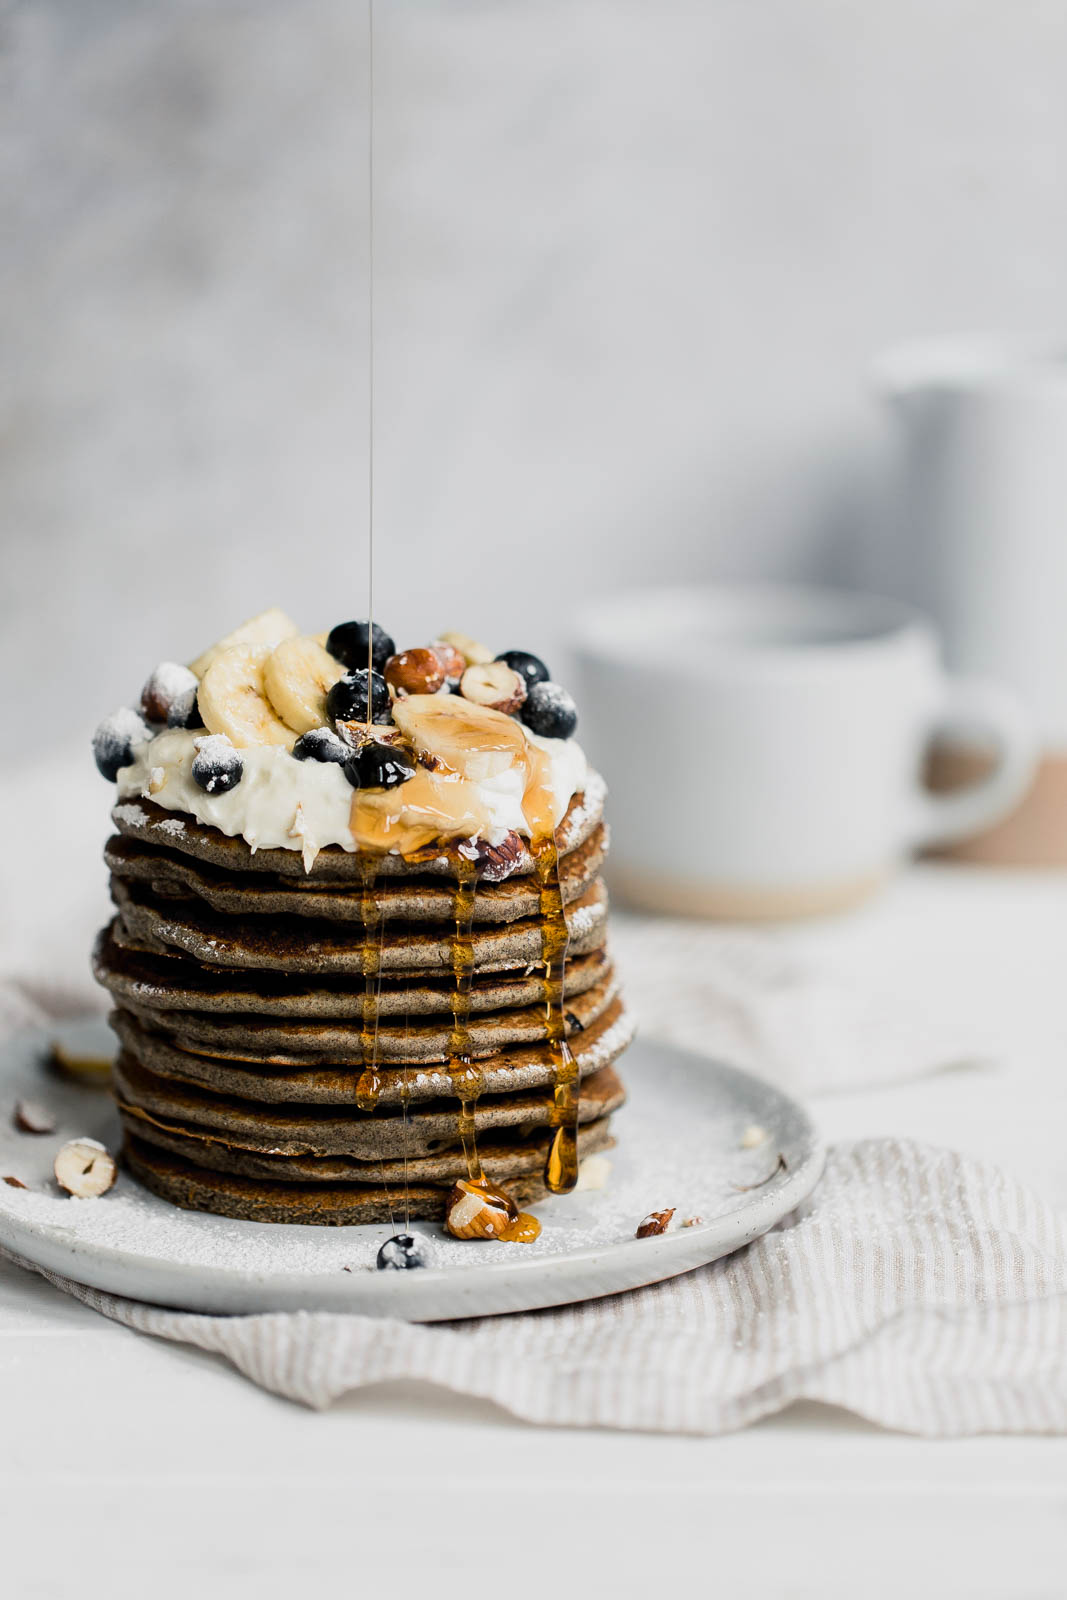 Gluten Free Buckwheat Pancakes With Blueberries Broma Bakery